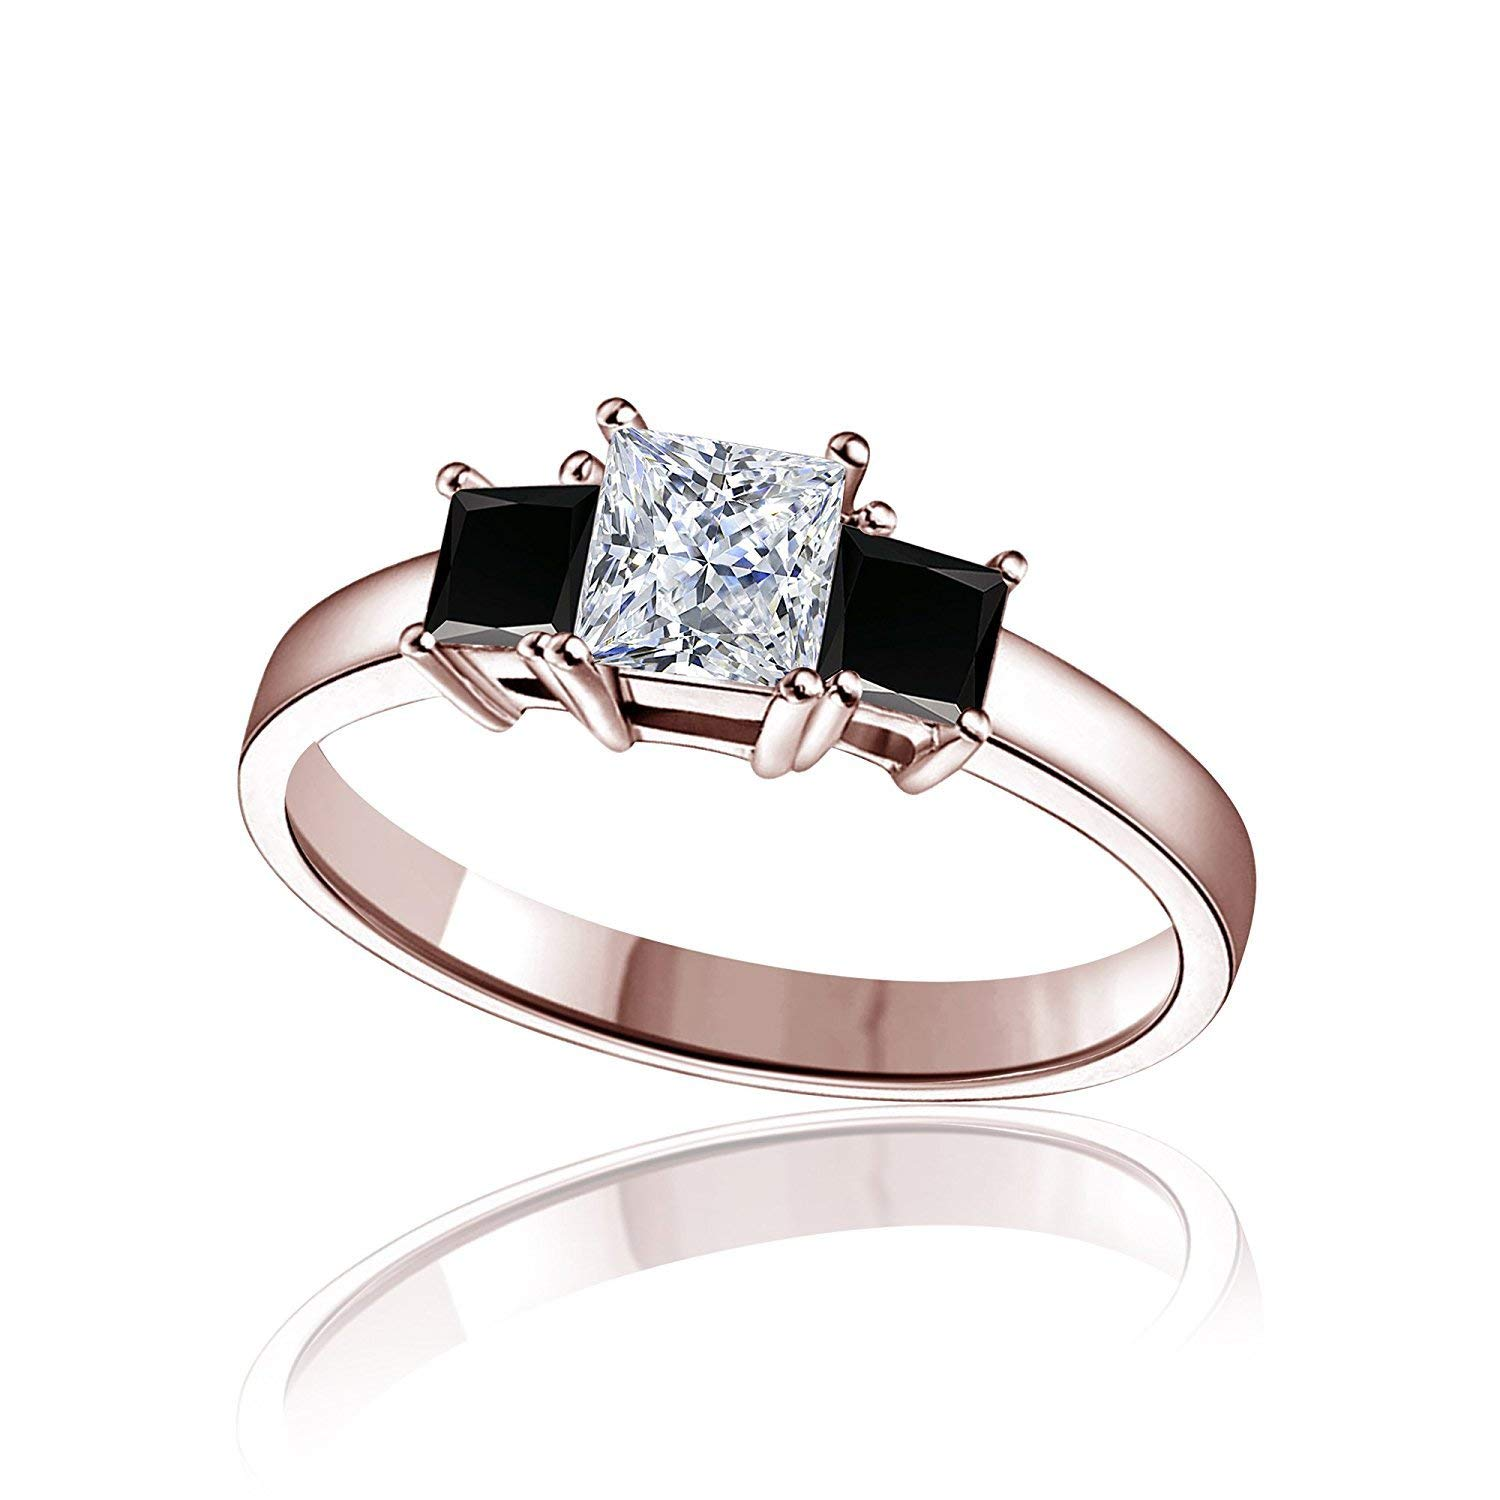 TVS-JEWELS Princess Cut Lab Created Three Stone Ring In 925 Sterling Silver 14k Rose Gold Plated